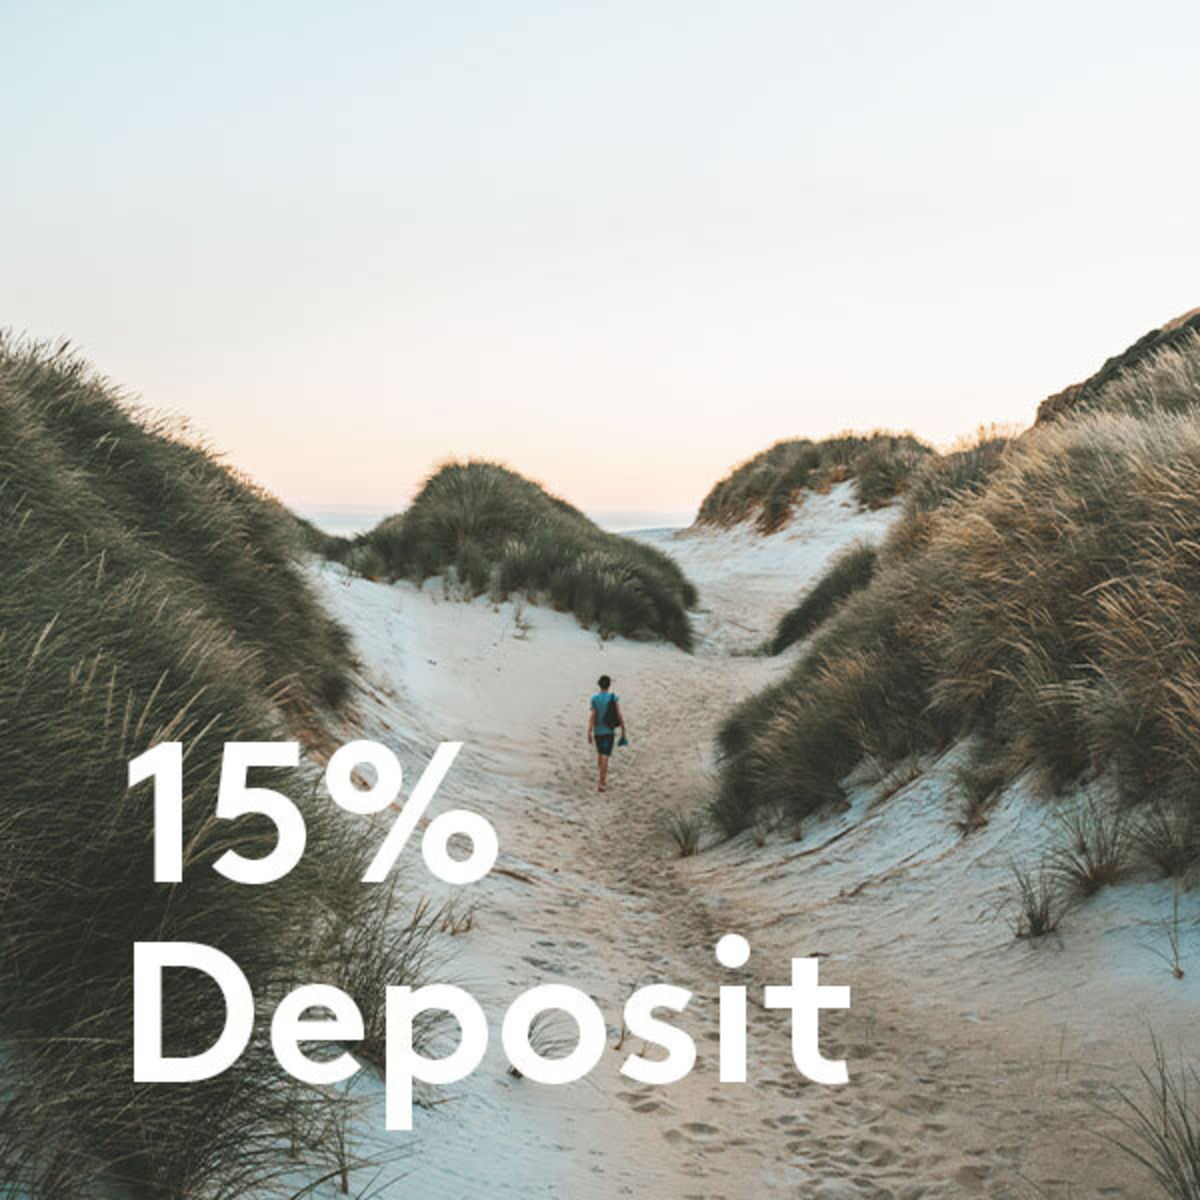 15% off text over man walking in sand dunes